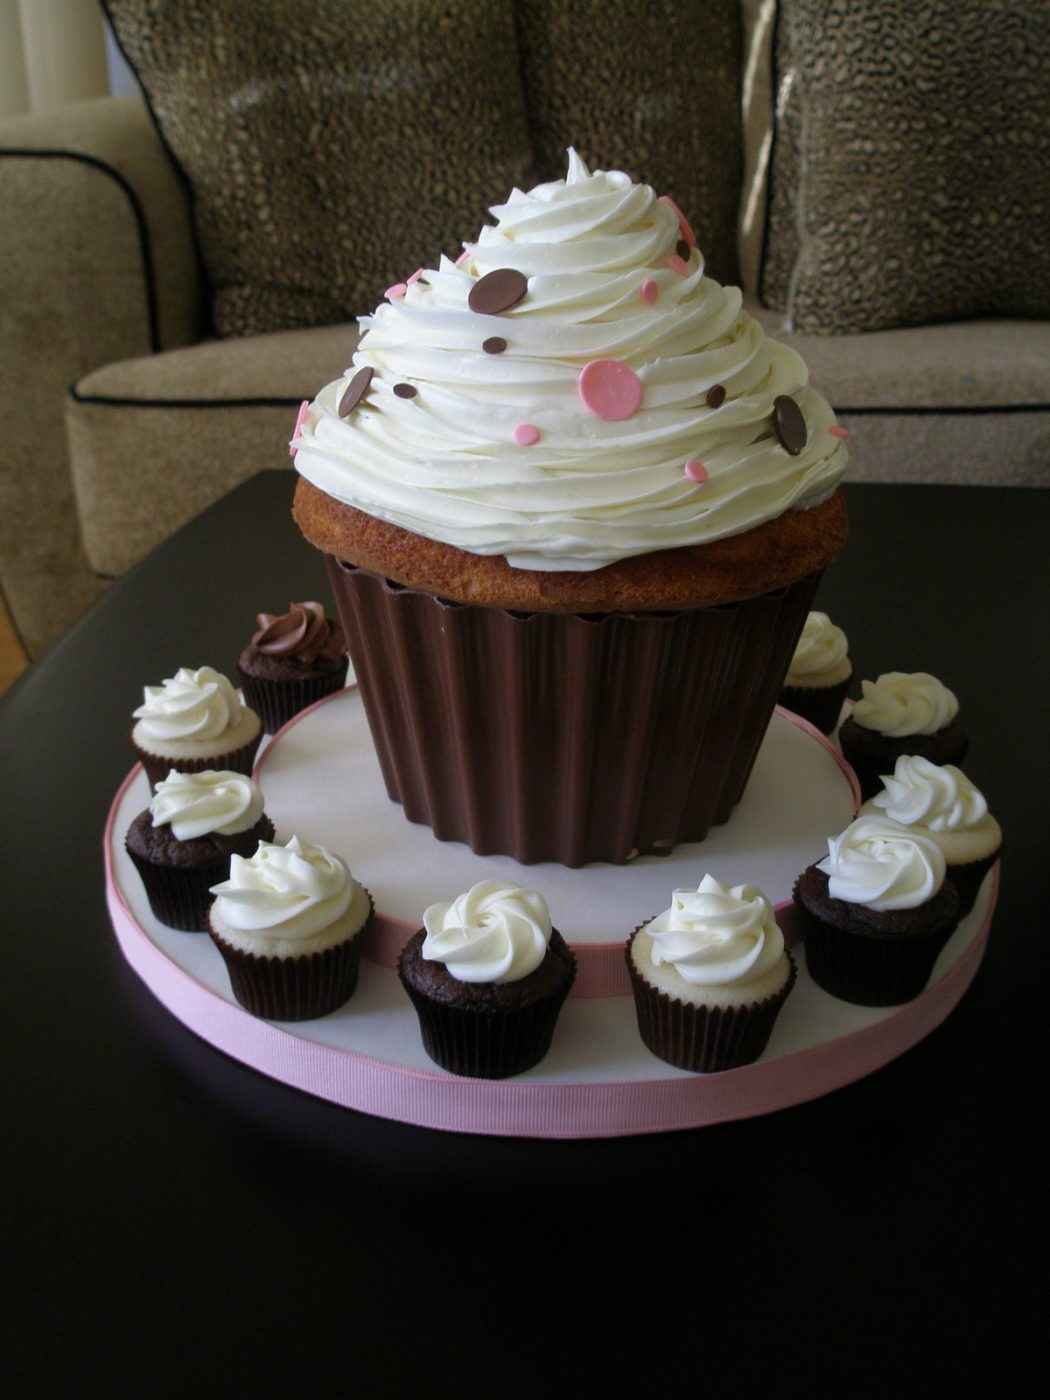 Really-Big-Pink-and-Chocolate-Cupcake Cupcakes Are So Easy To Be Made At Home